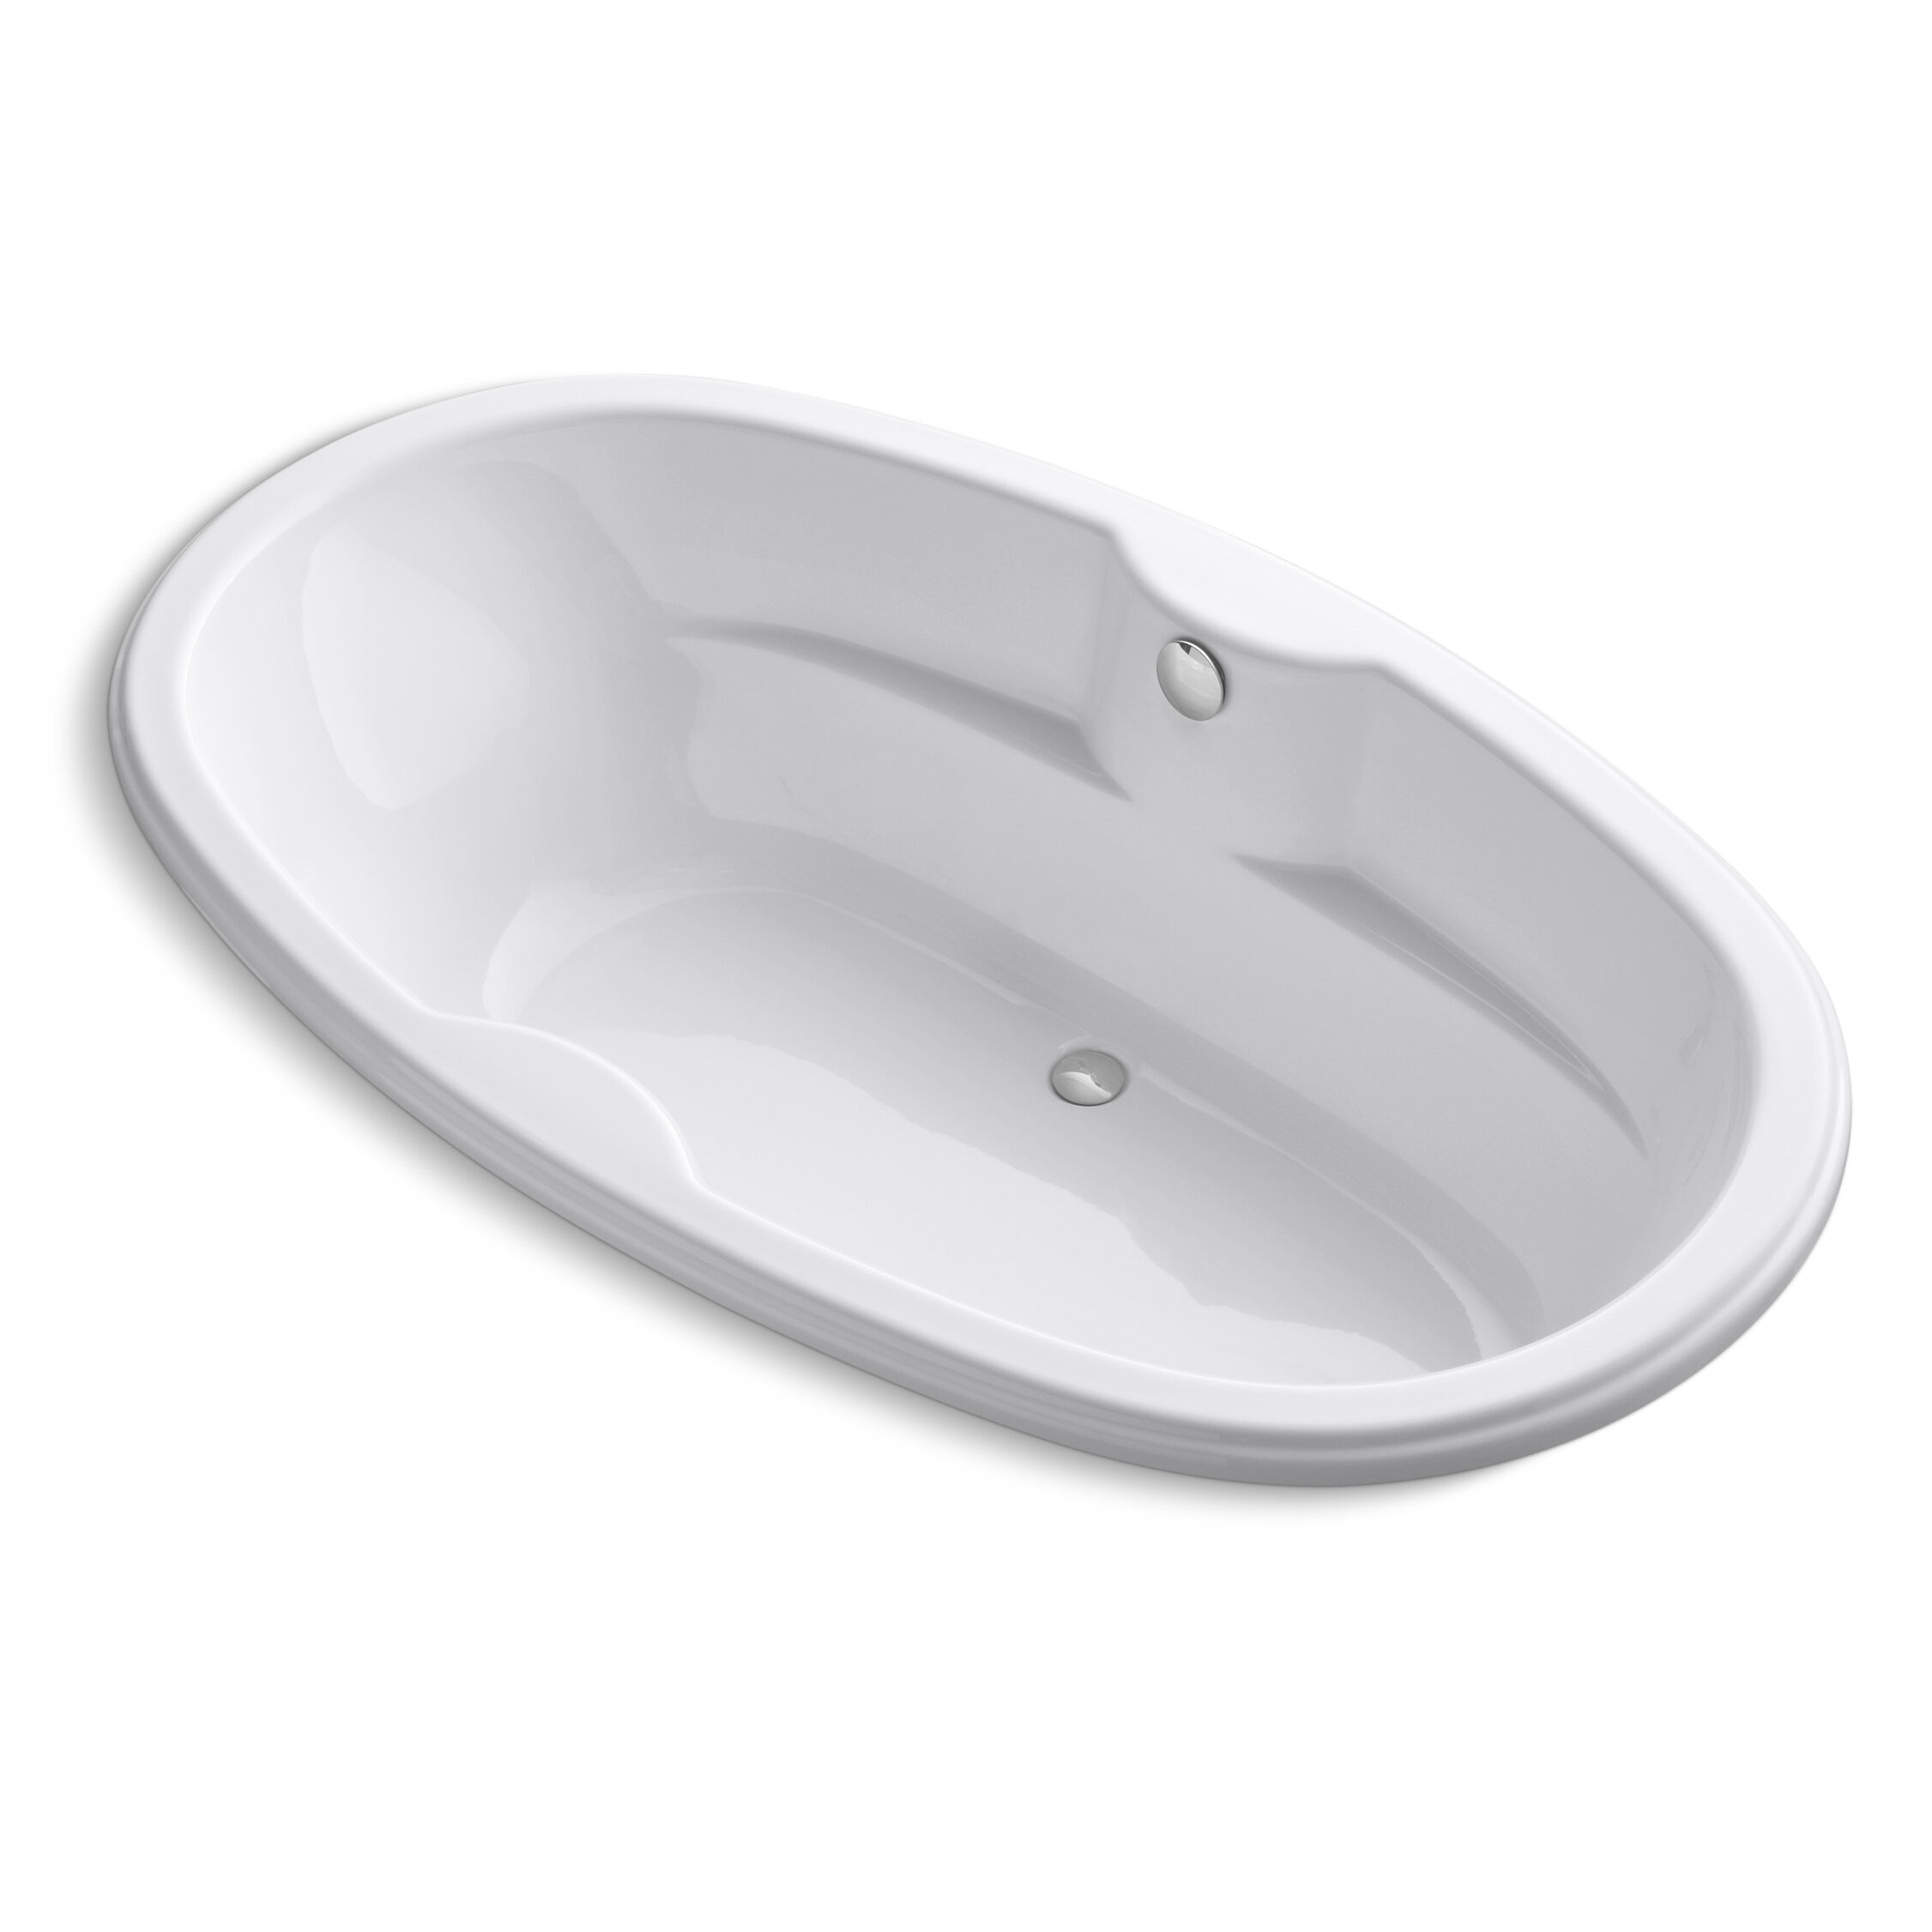 garden shipping overstock ove free home wyndham today product bathtubs freestanding marilyn decors bathtub